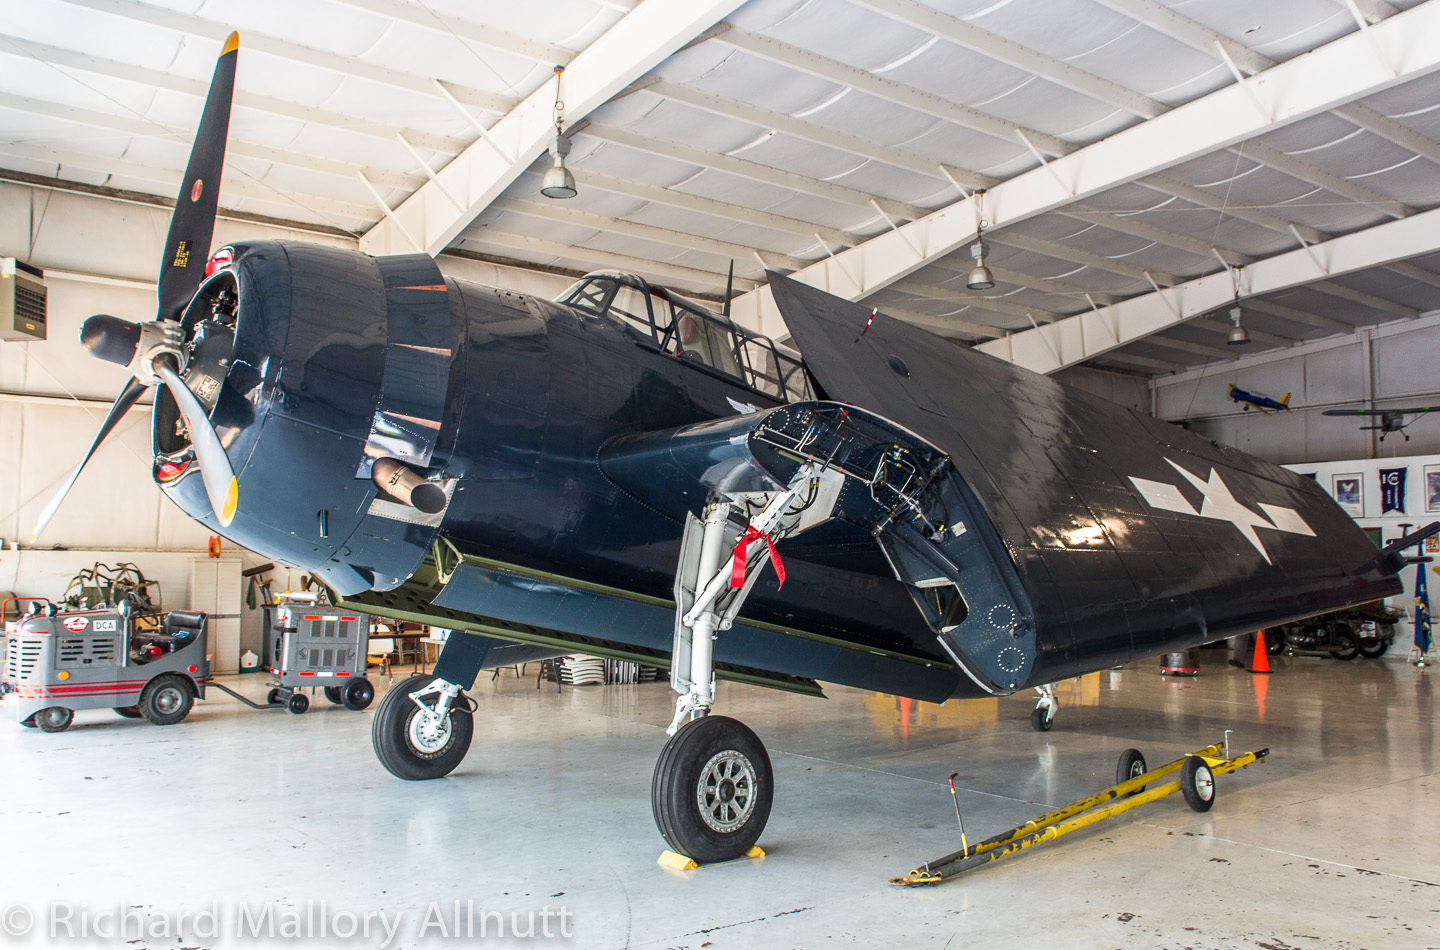 The CAF's freshly refurbished TBM-3E Avenger (Bu.91426) is now home in Culpeper. (photo by Richard Mallory Allnutt)